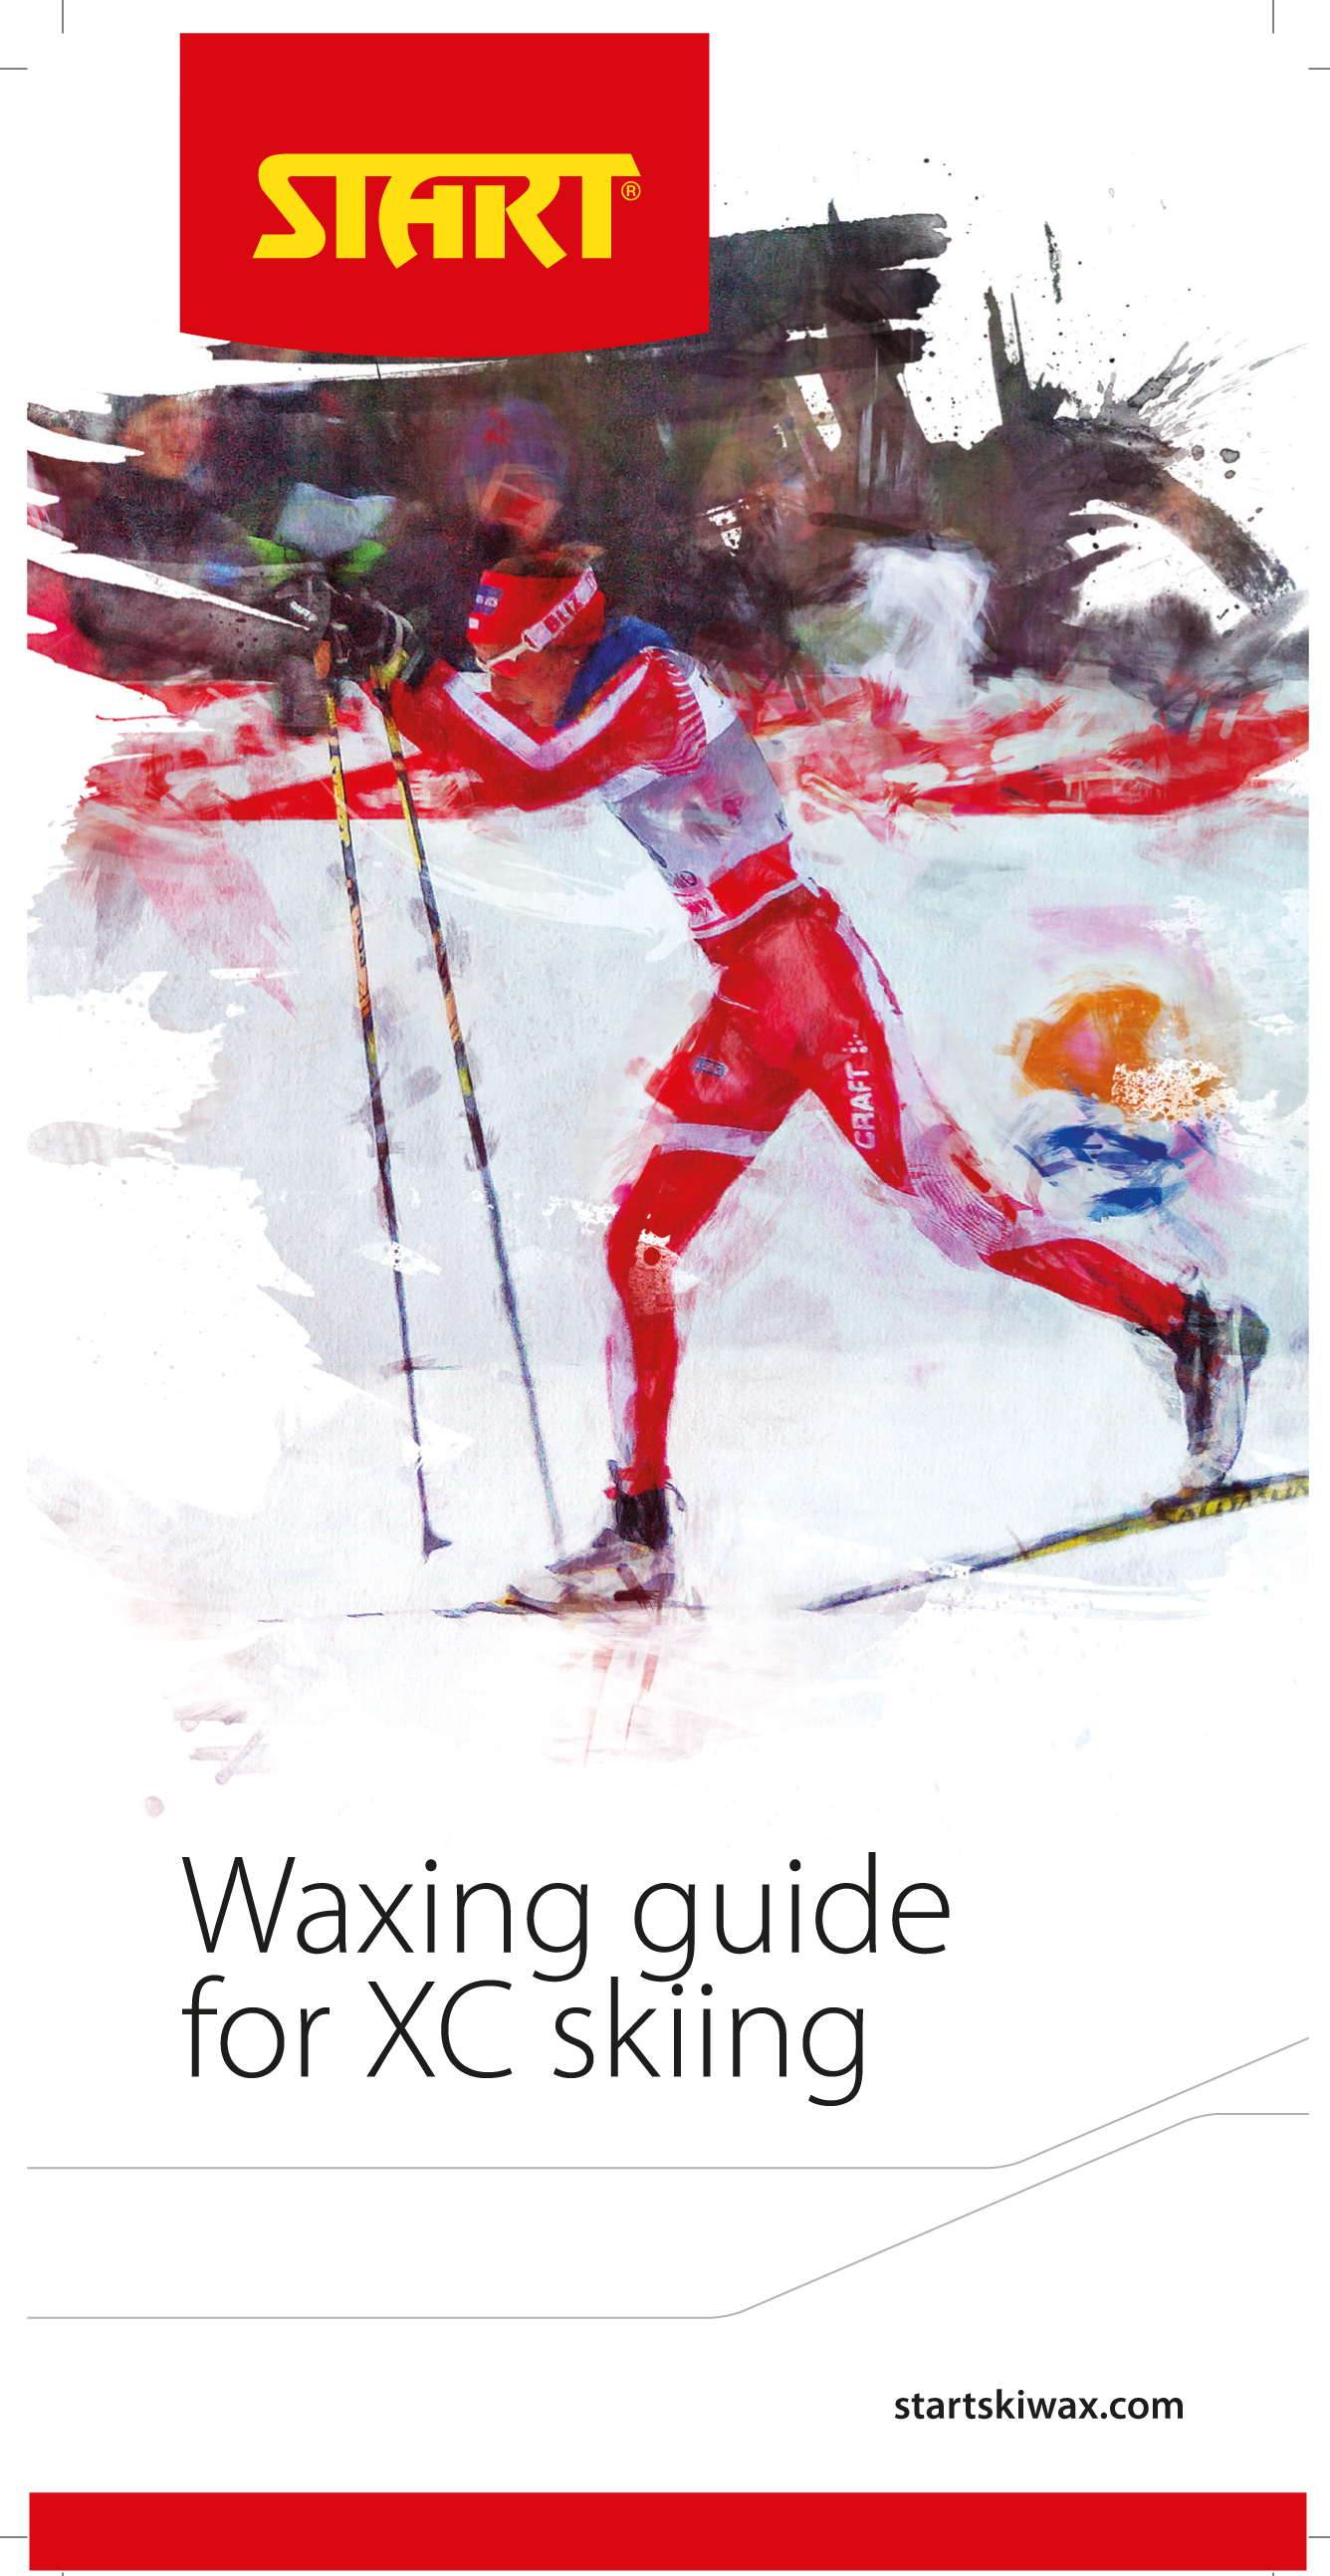 START WAXING GUIDE